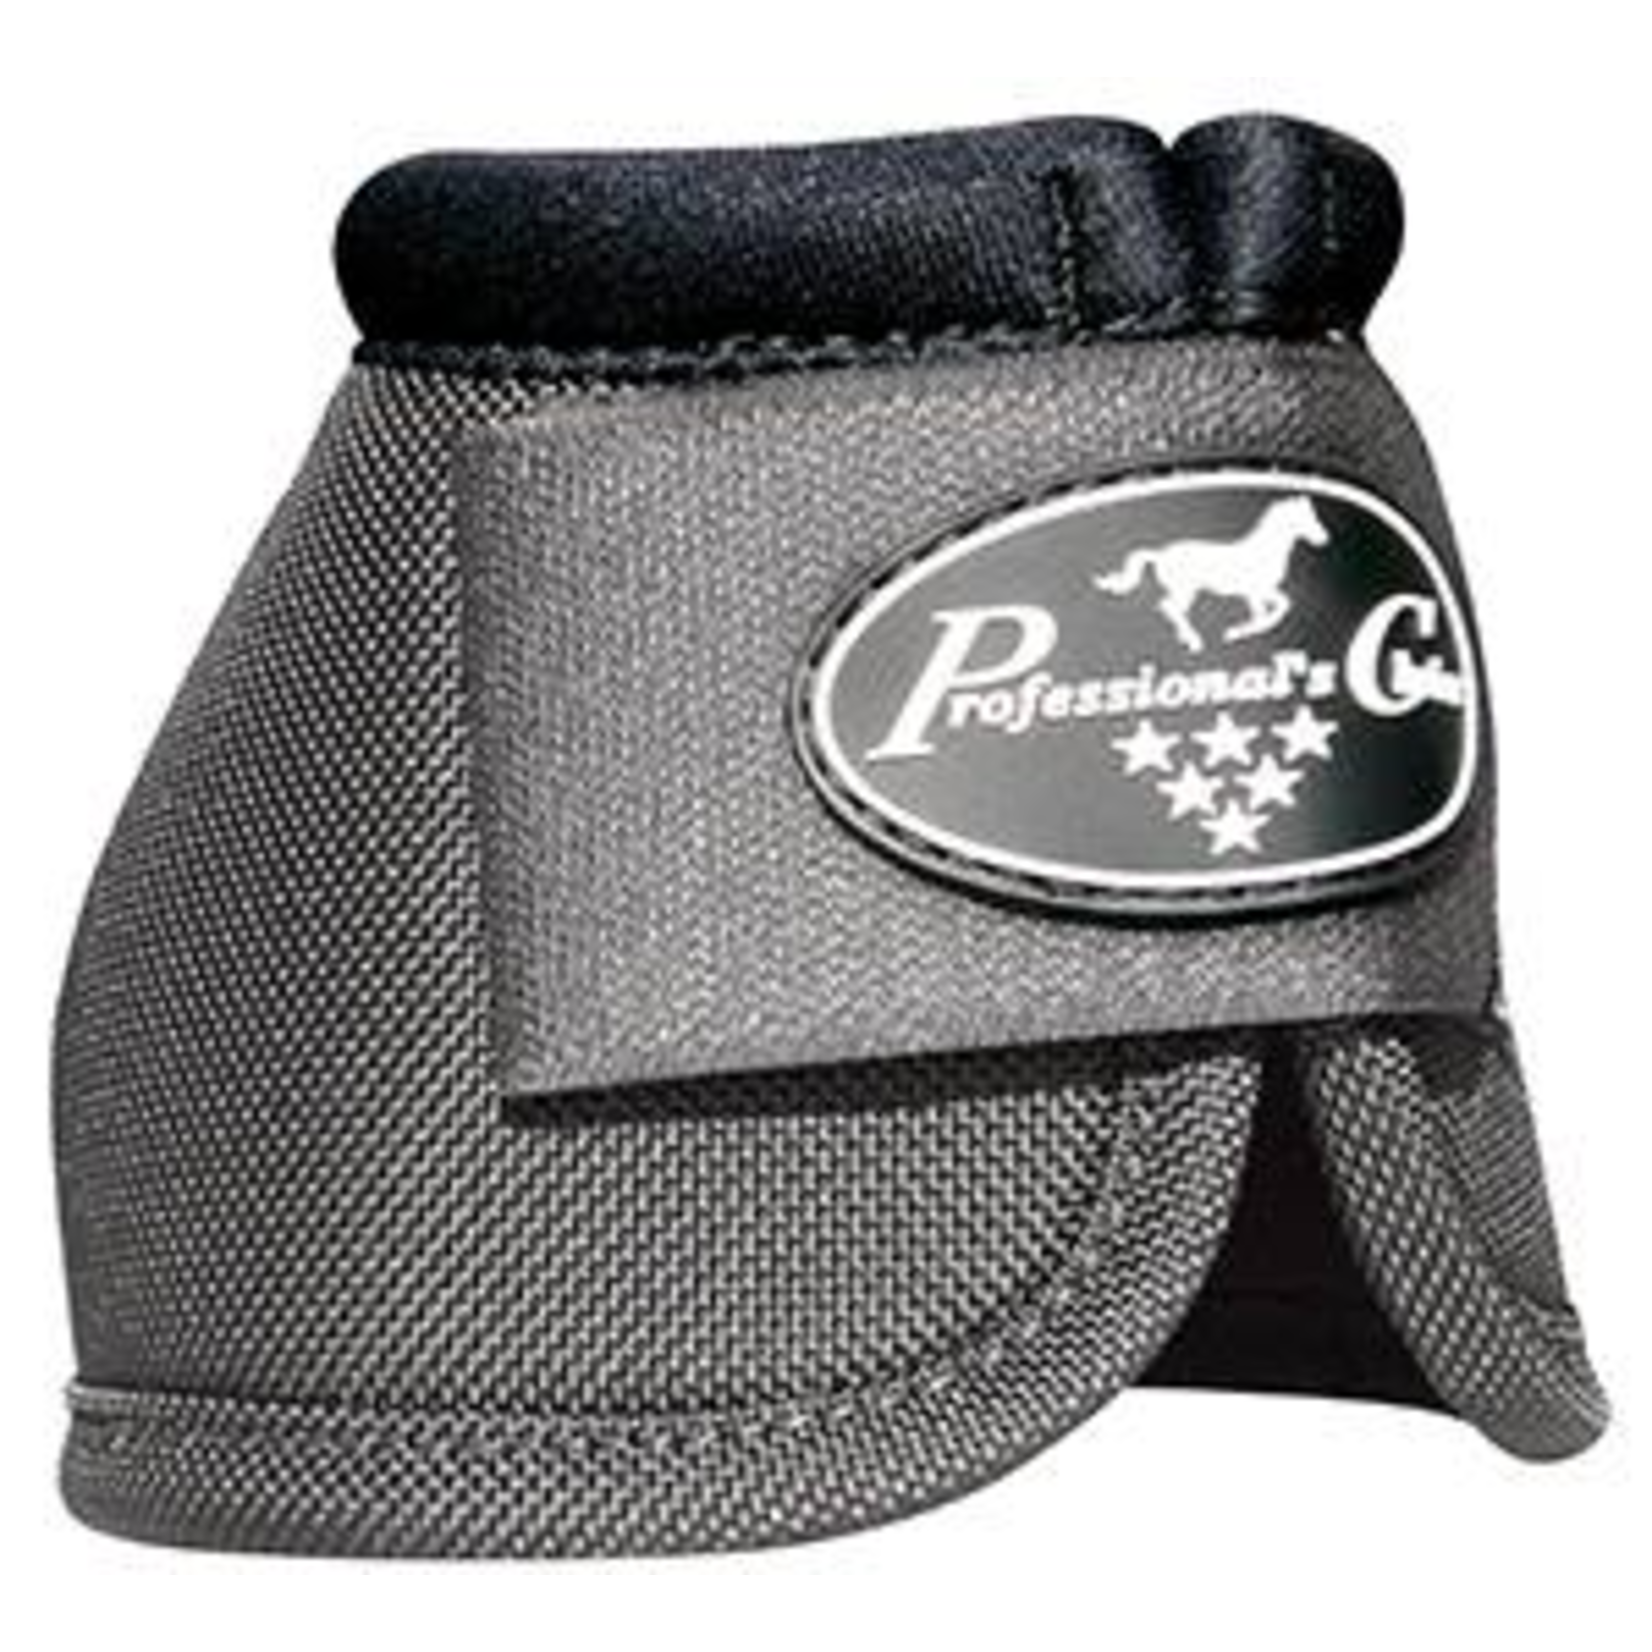 Professional's Choice Med/Char PC Ballistic Bell Boot